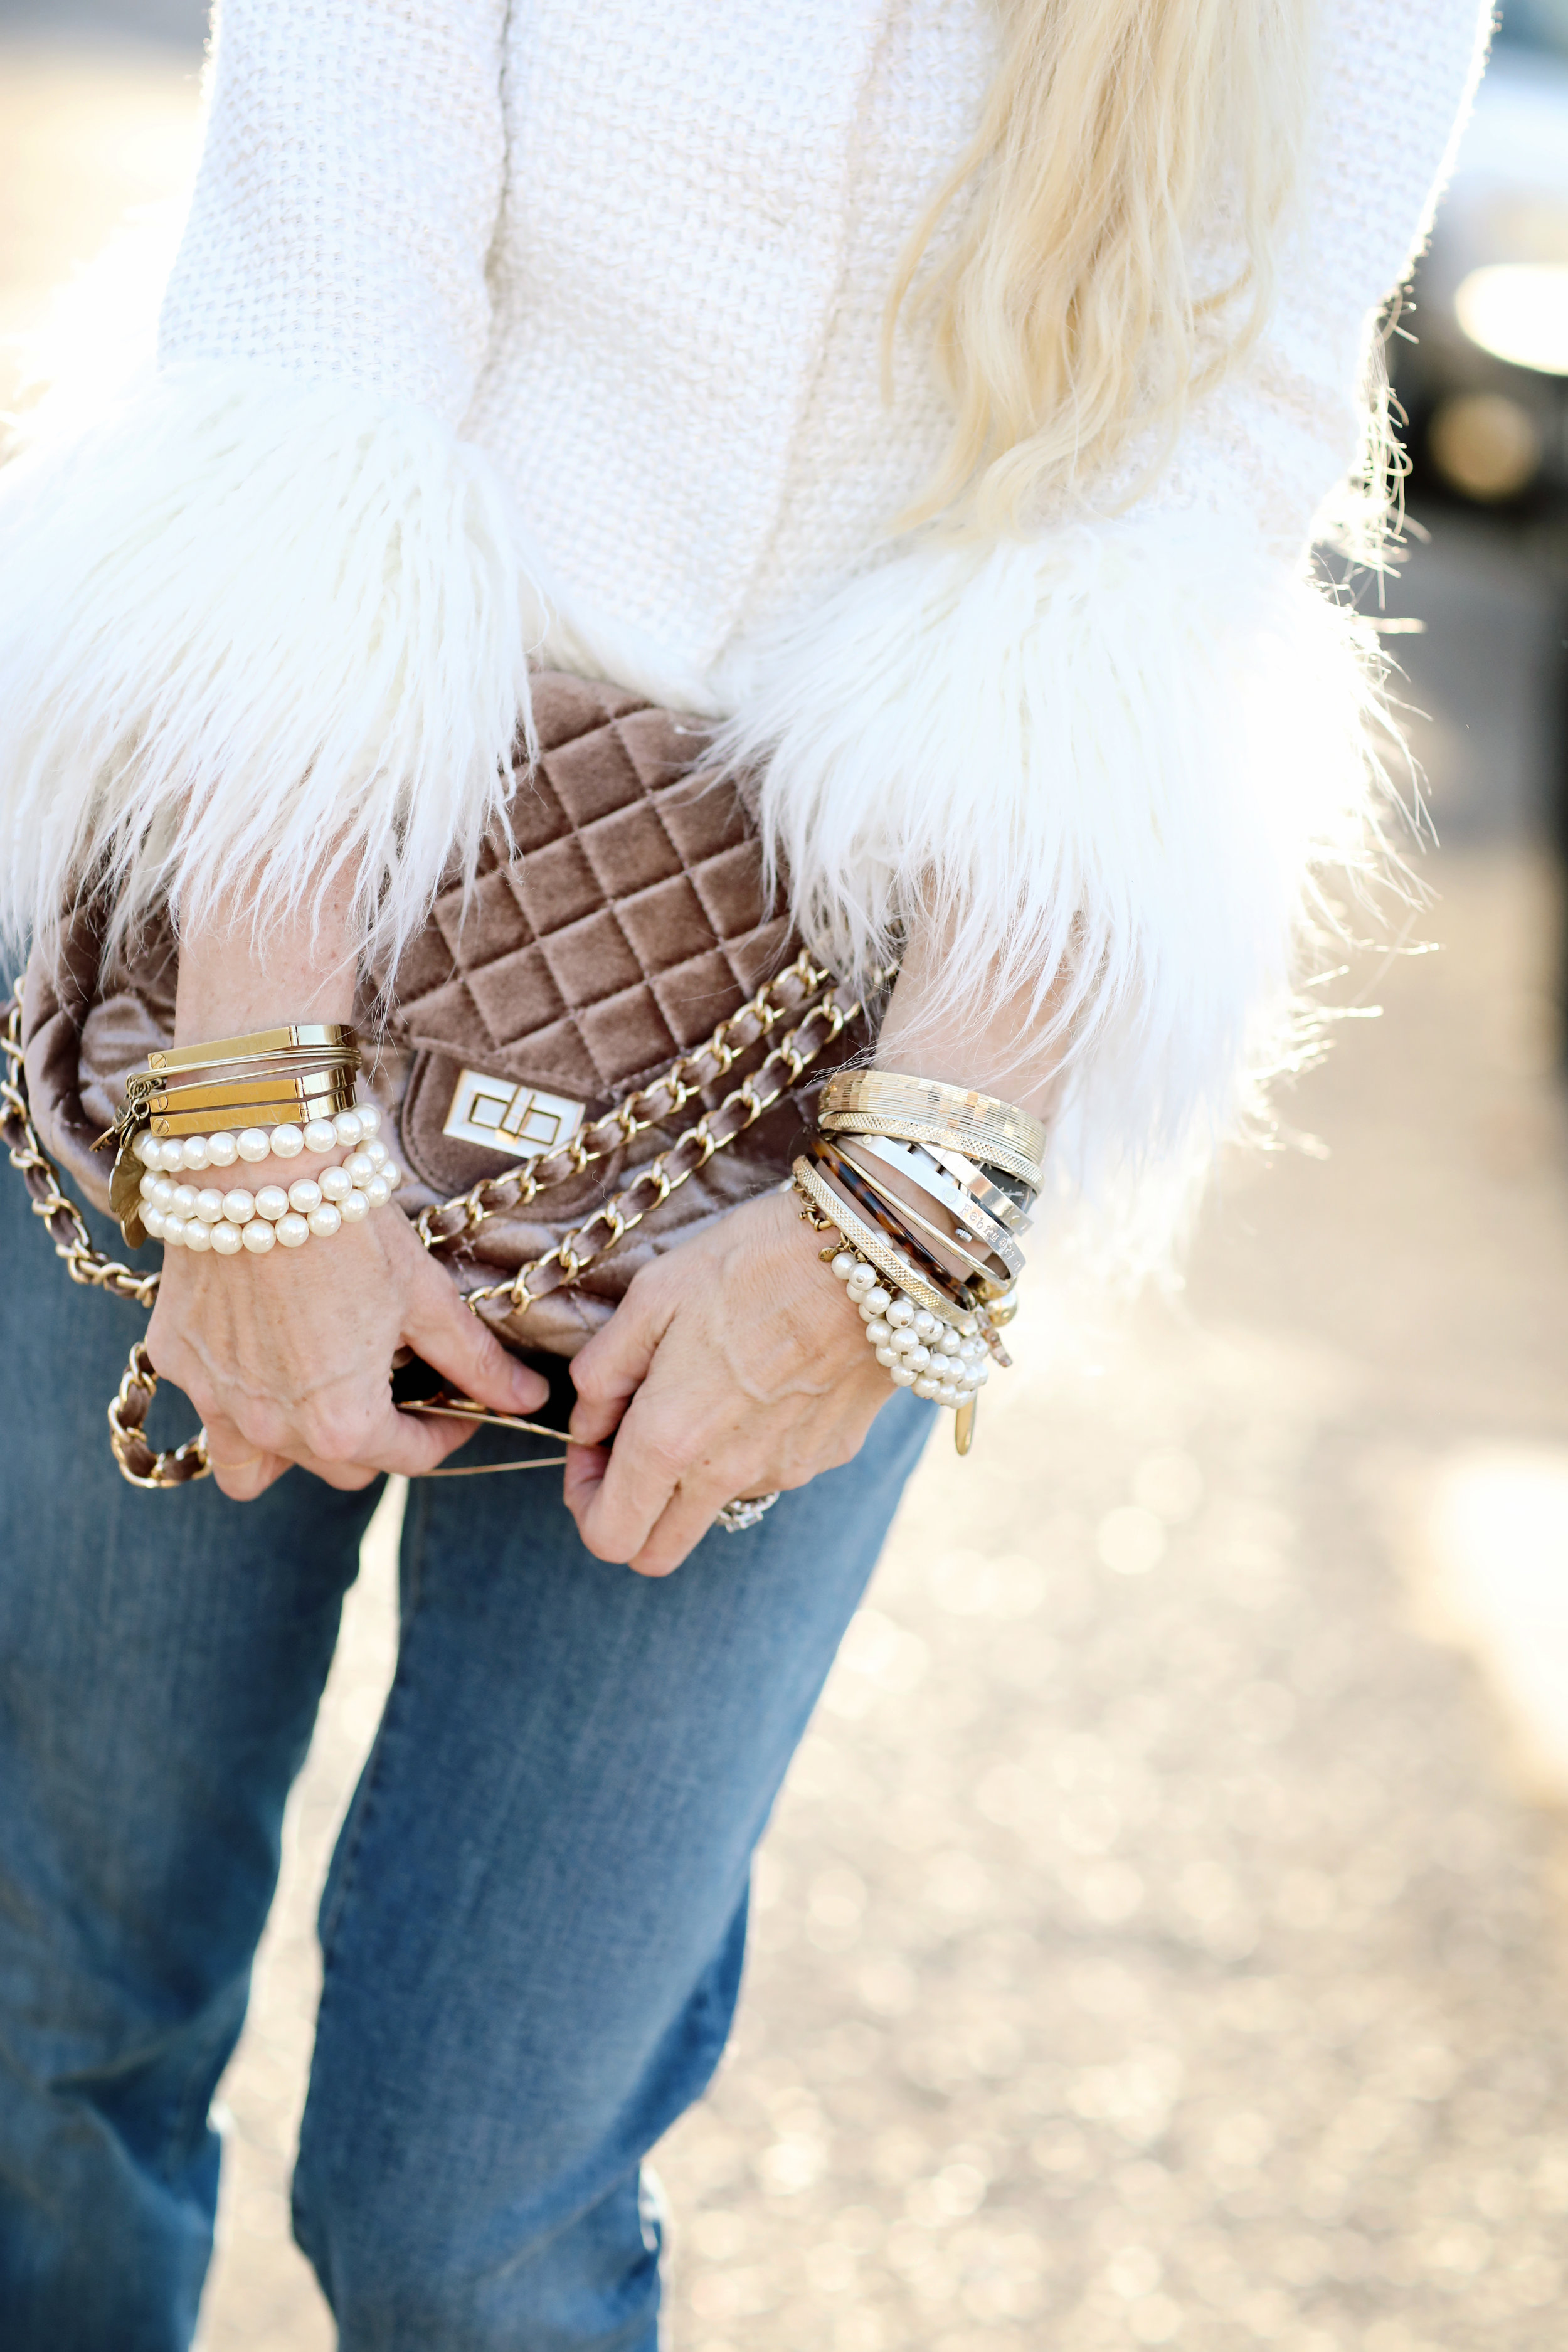 Fashion Blogger photo of jewelry.